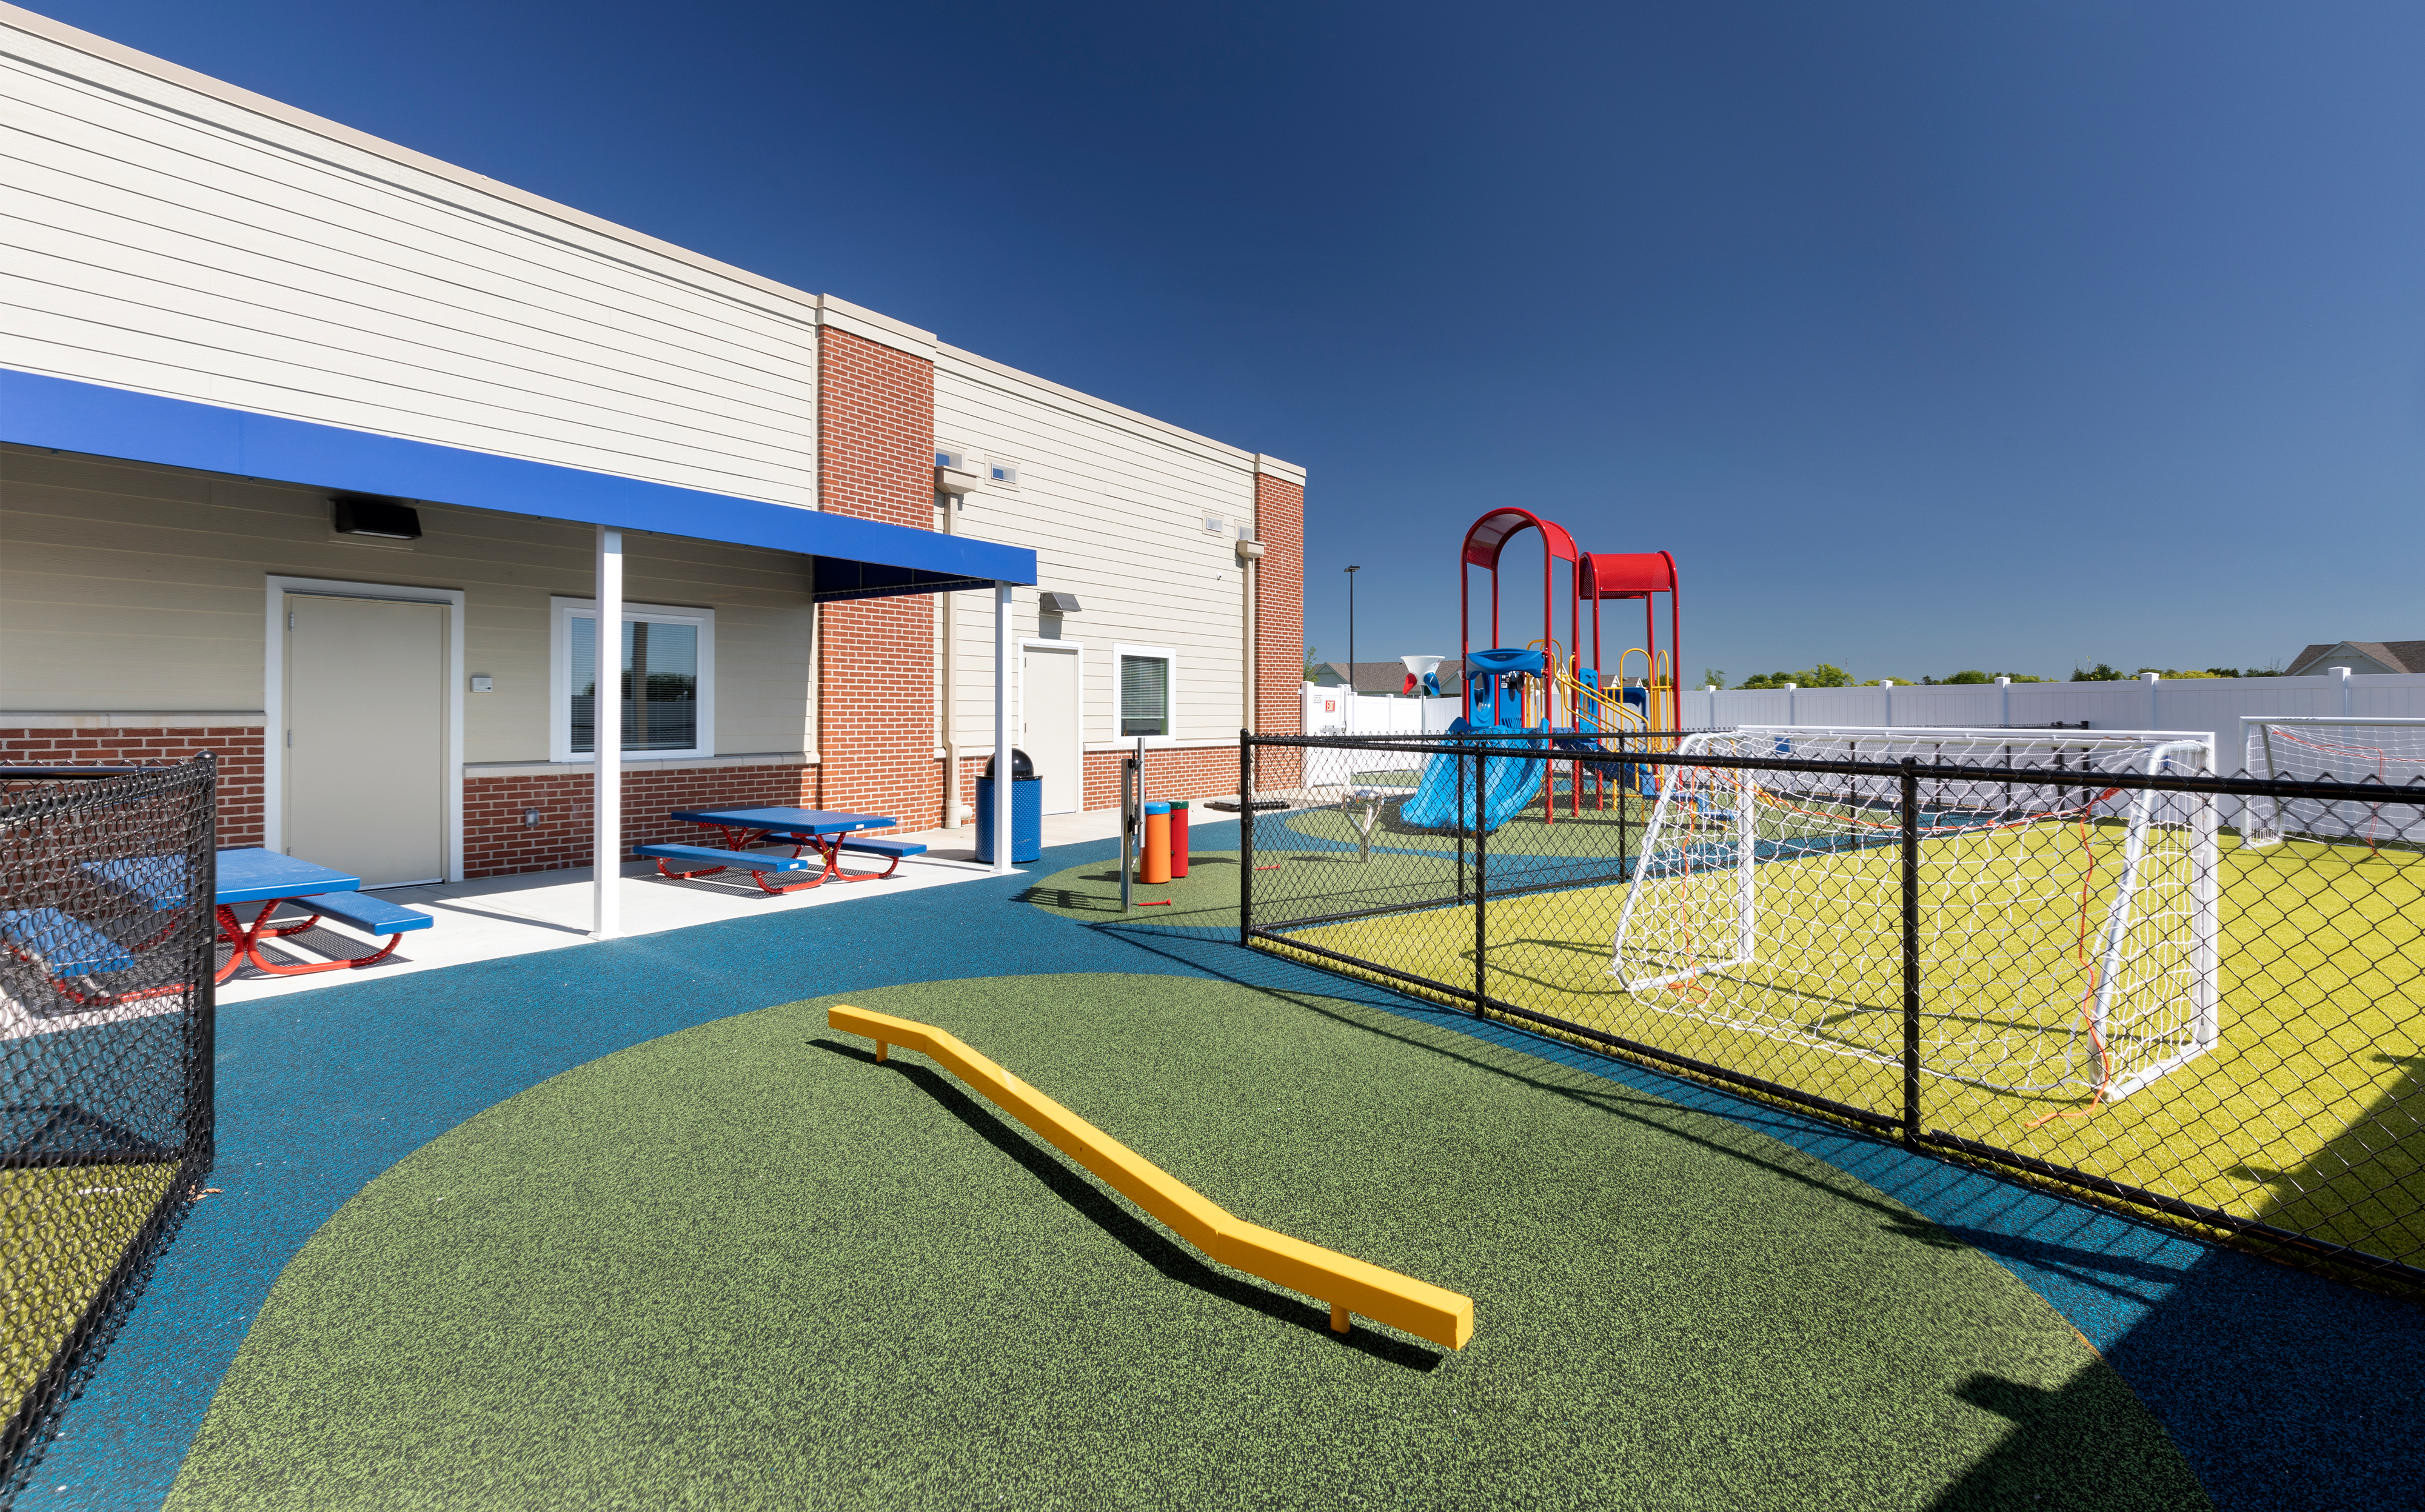 The Learning Experience Playground